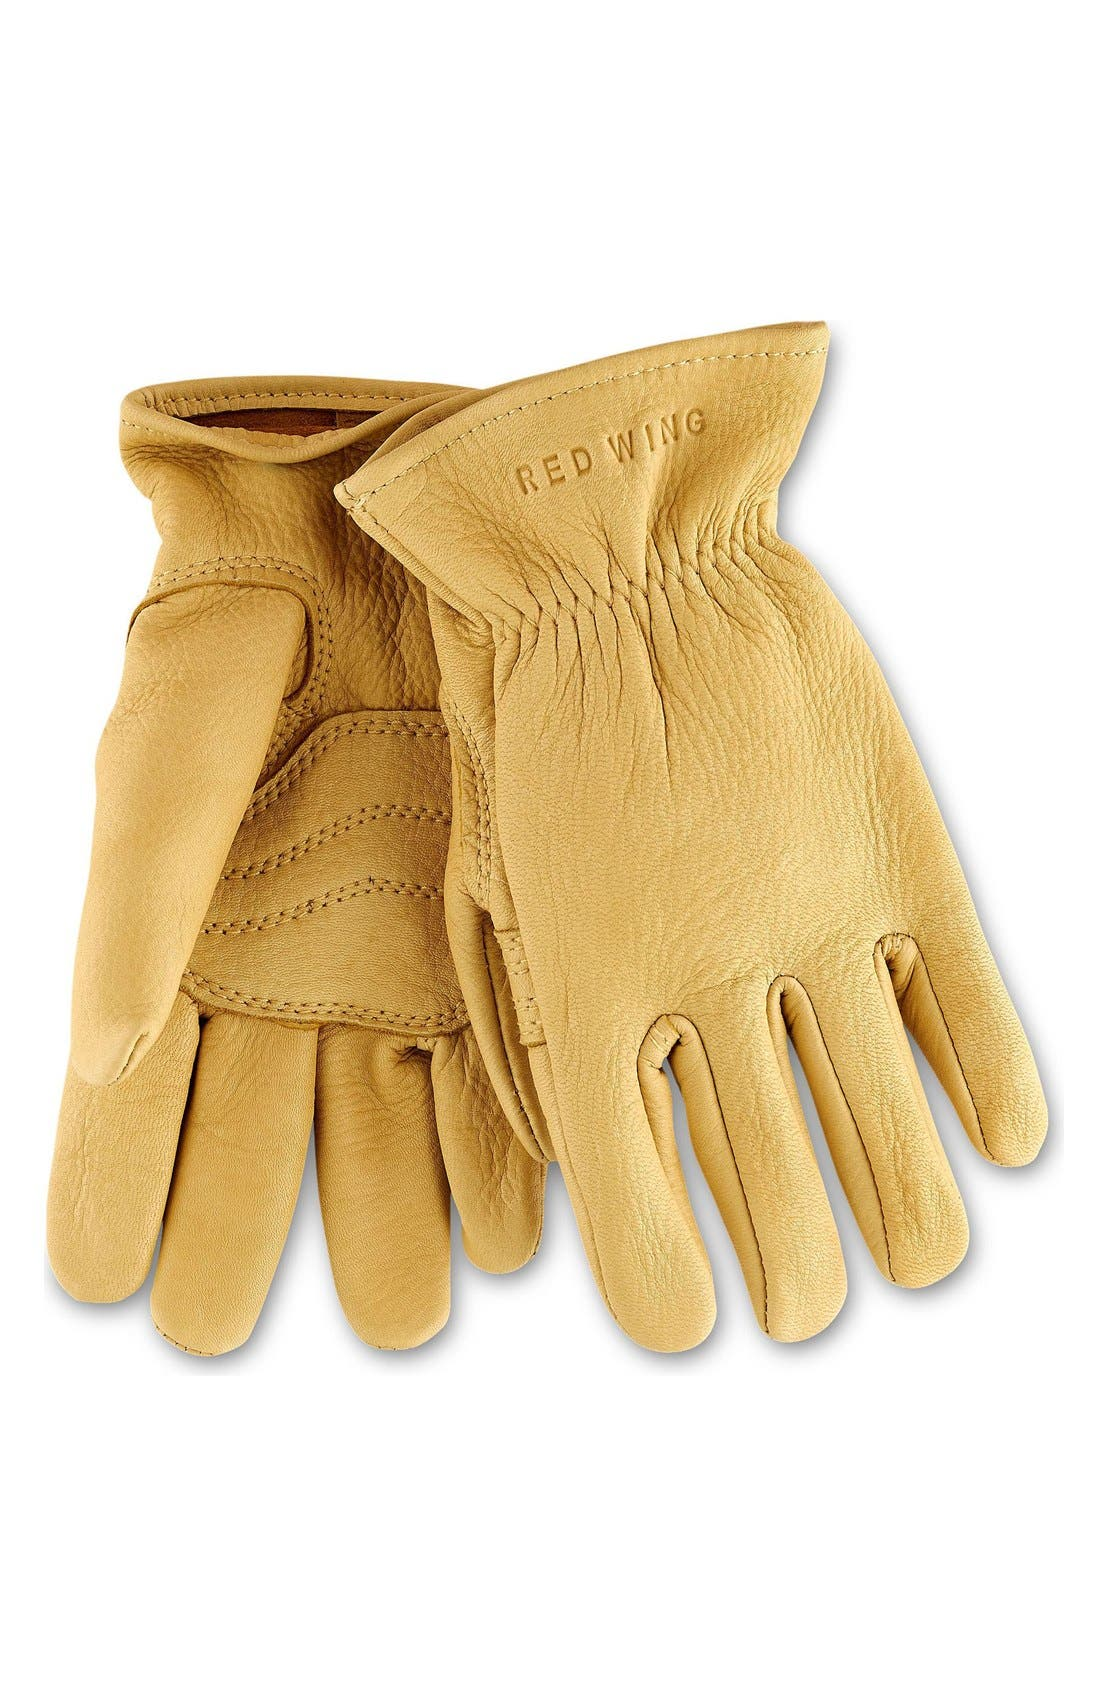 RED WING,                             Buckskin Leather Gloves,                             Main thumbnail 1, color,                             YELLOW